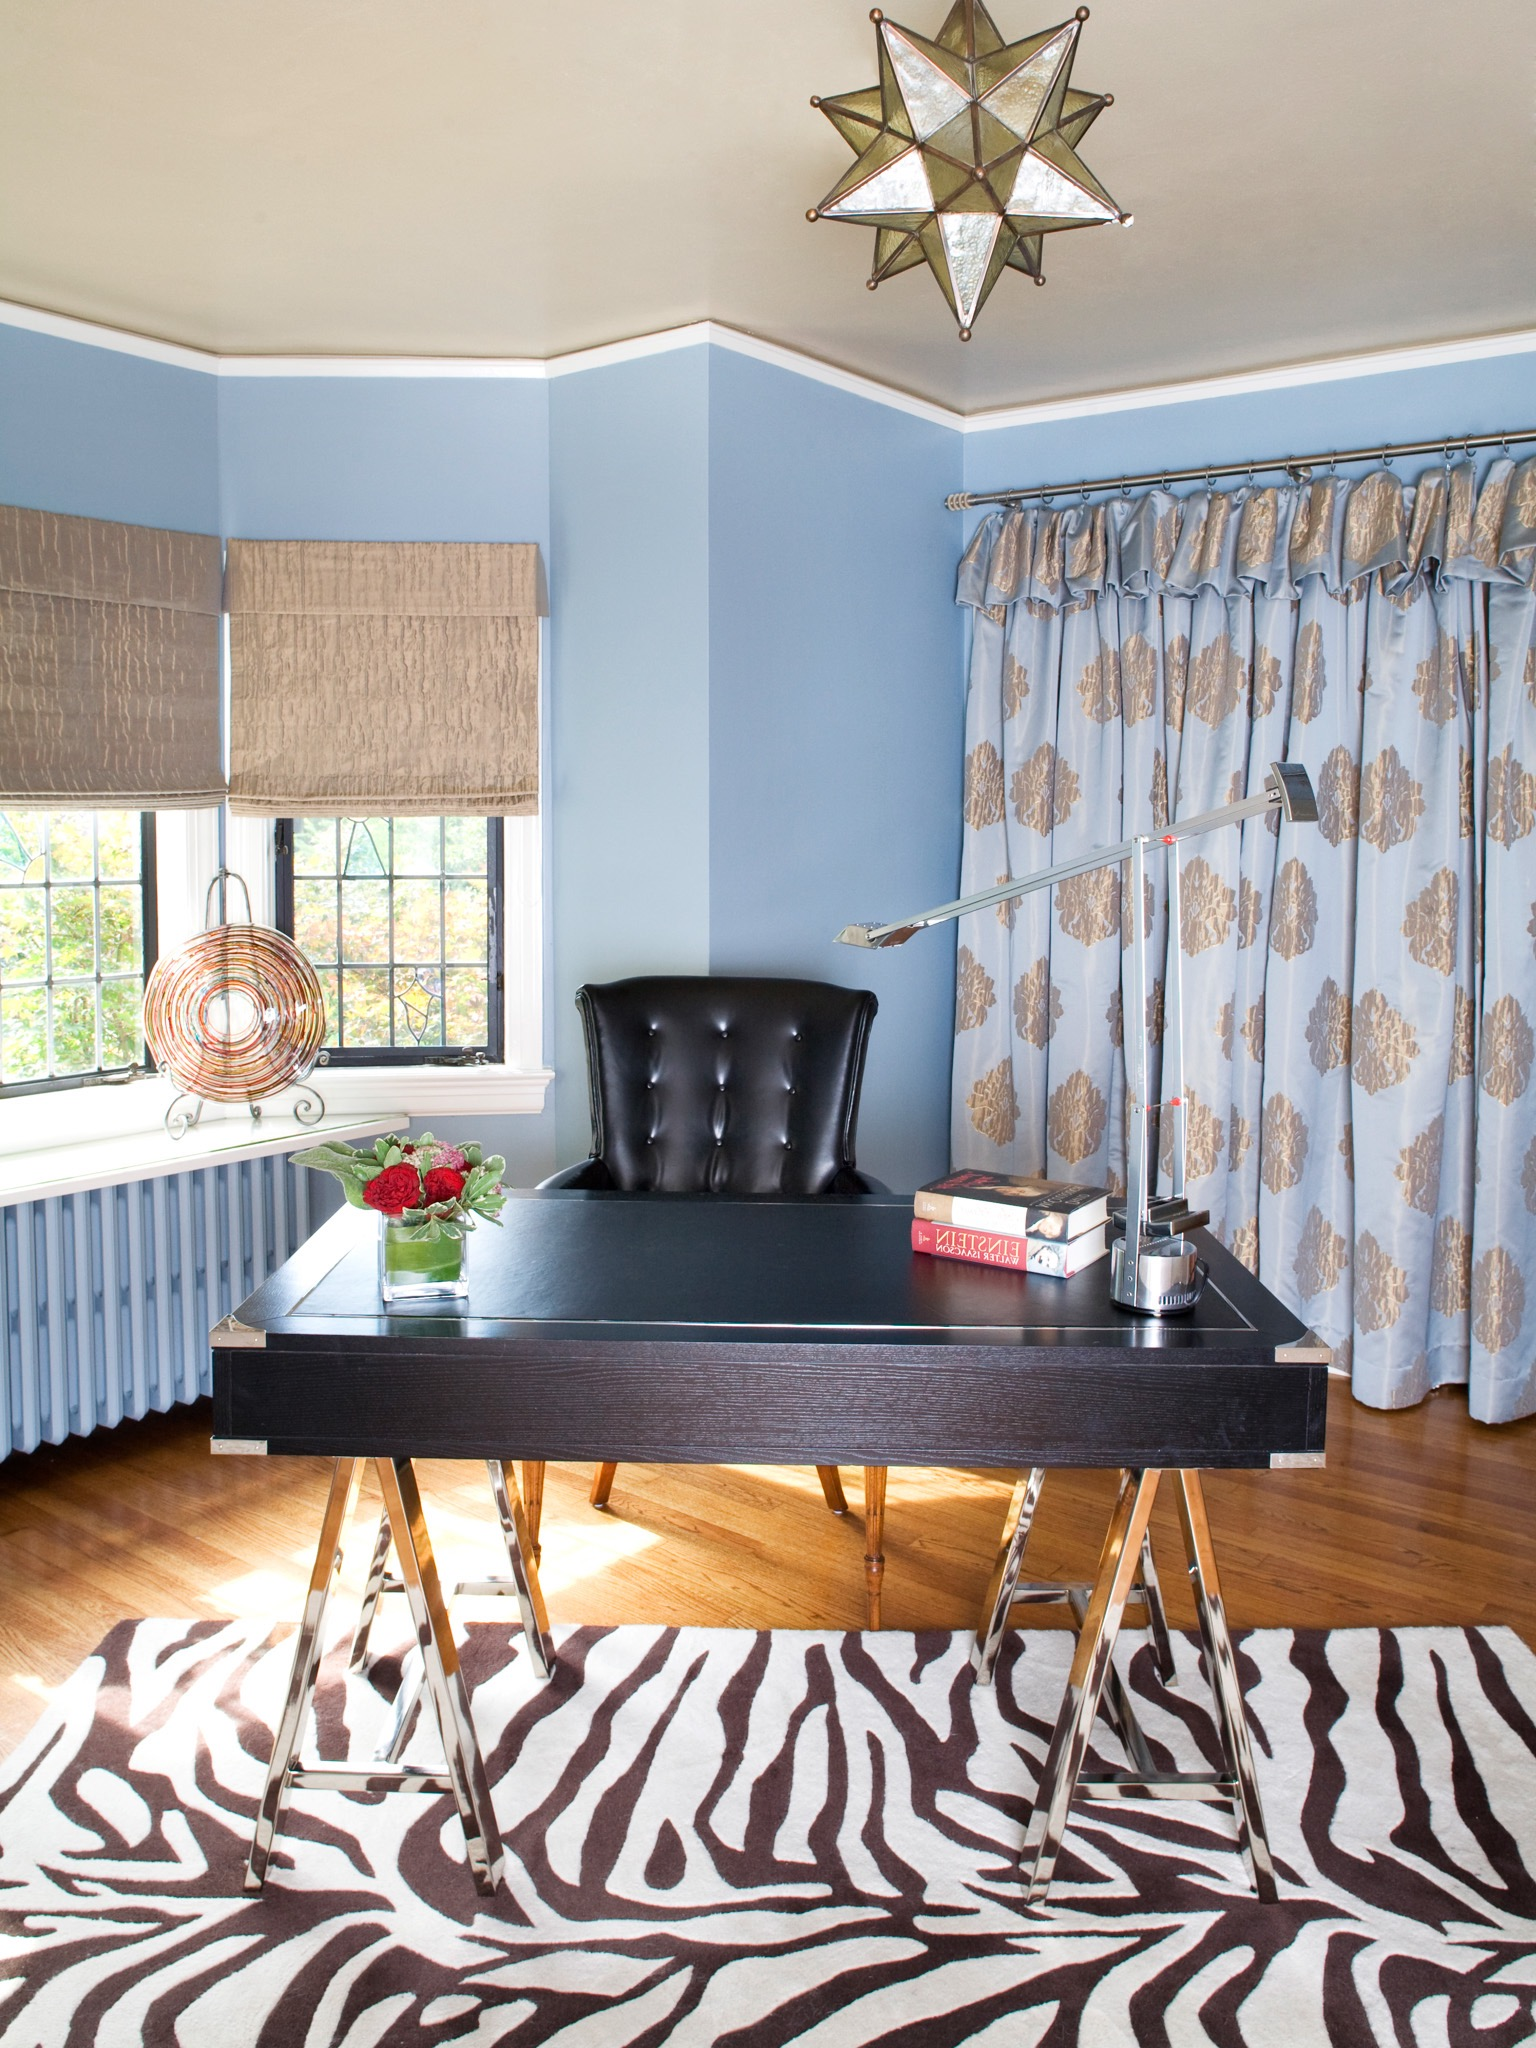 Traditional Workspace Remodel With Black White Rug (Image 49 of 50)